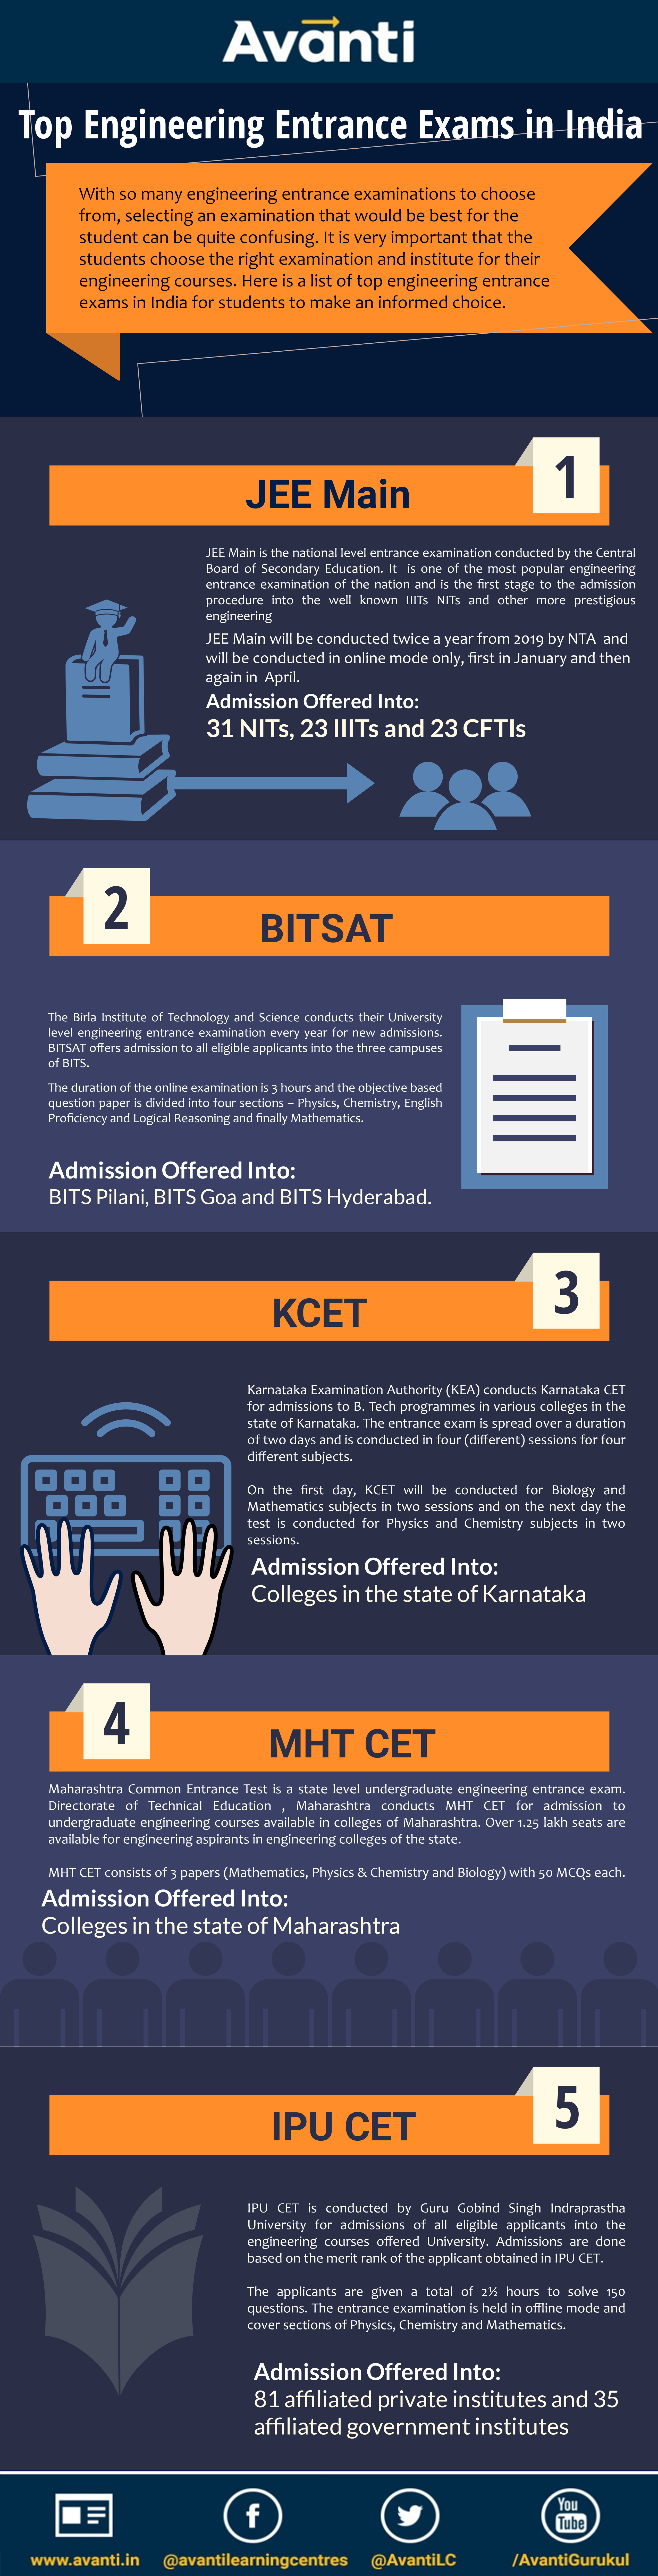 KCET, KCET exam, Karnataka Common Entrance Test